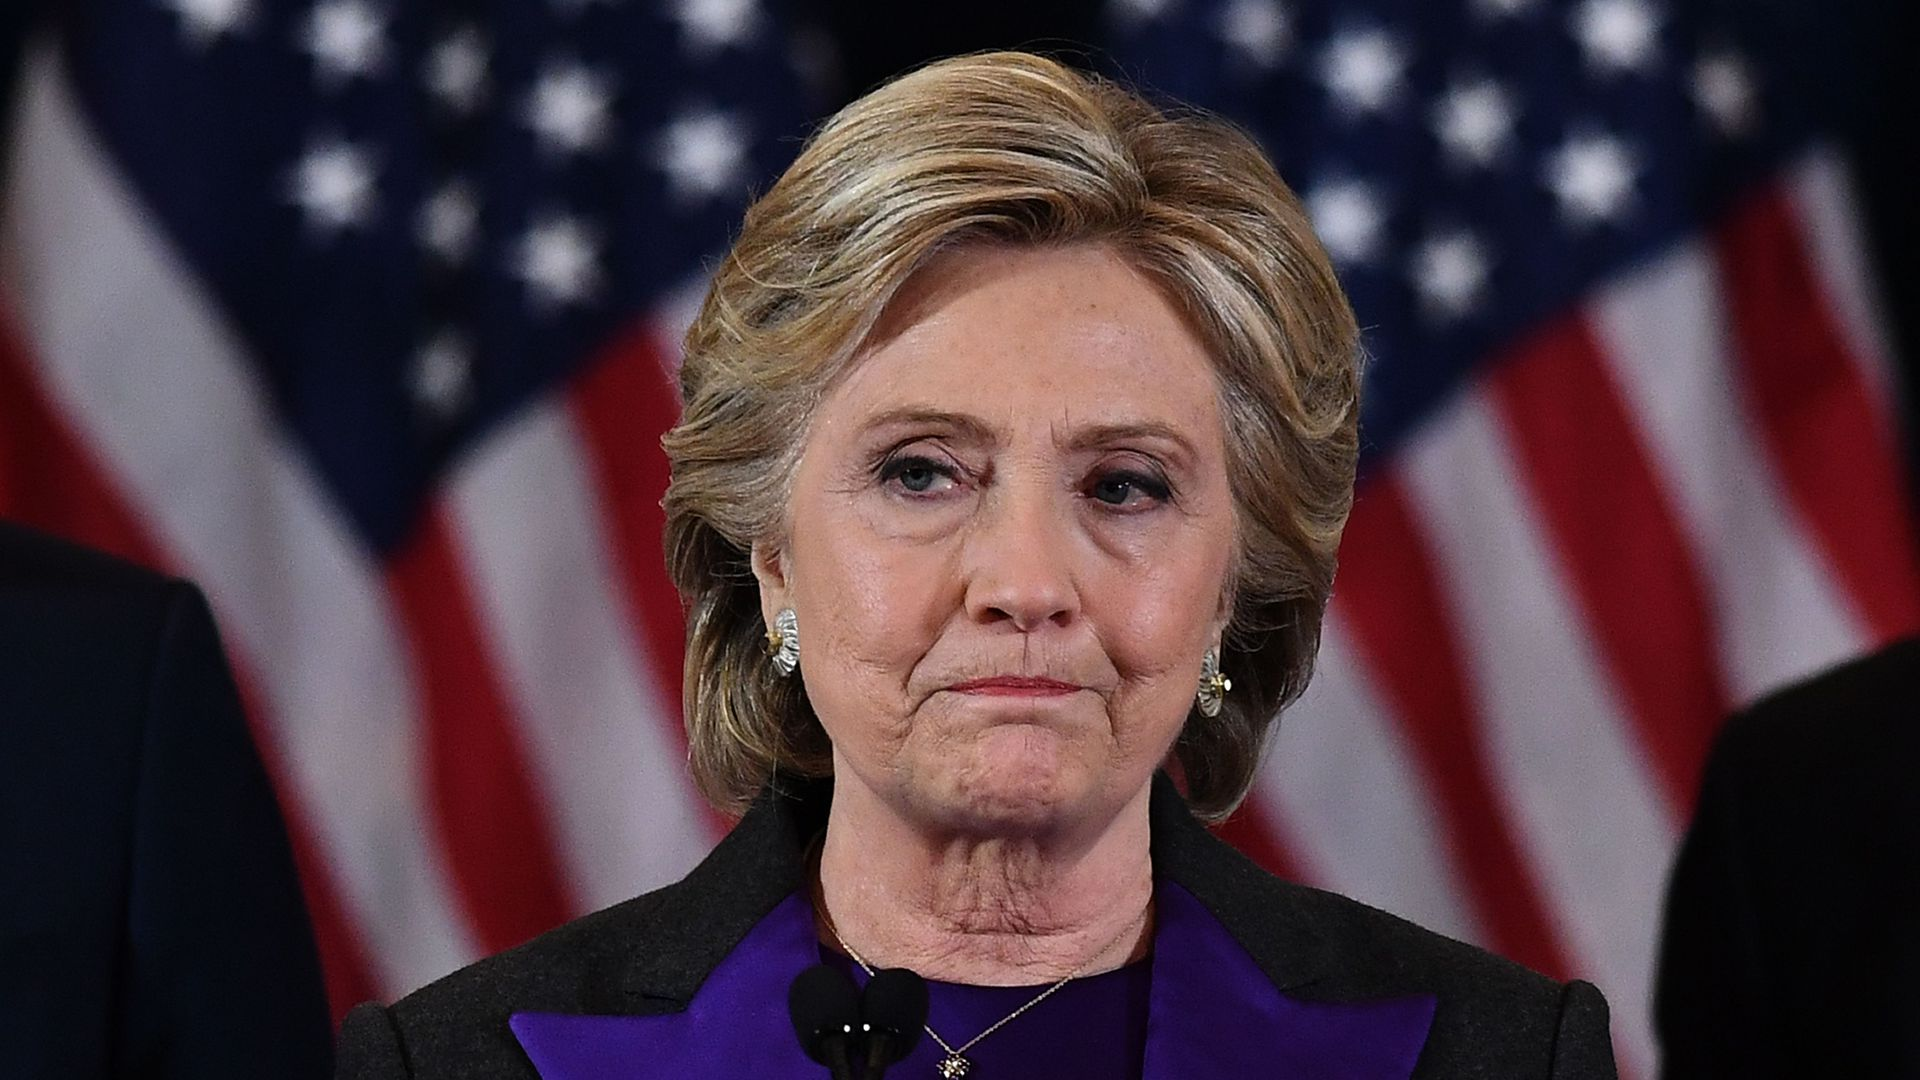 Hillary Clinton during his concession speech looking down